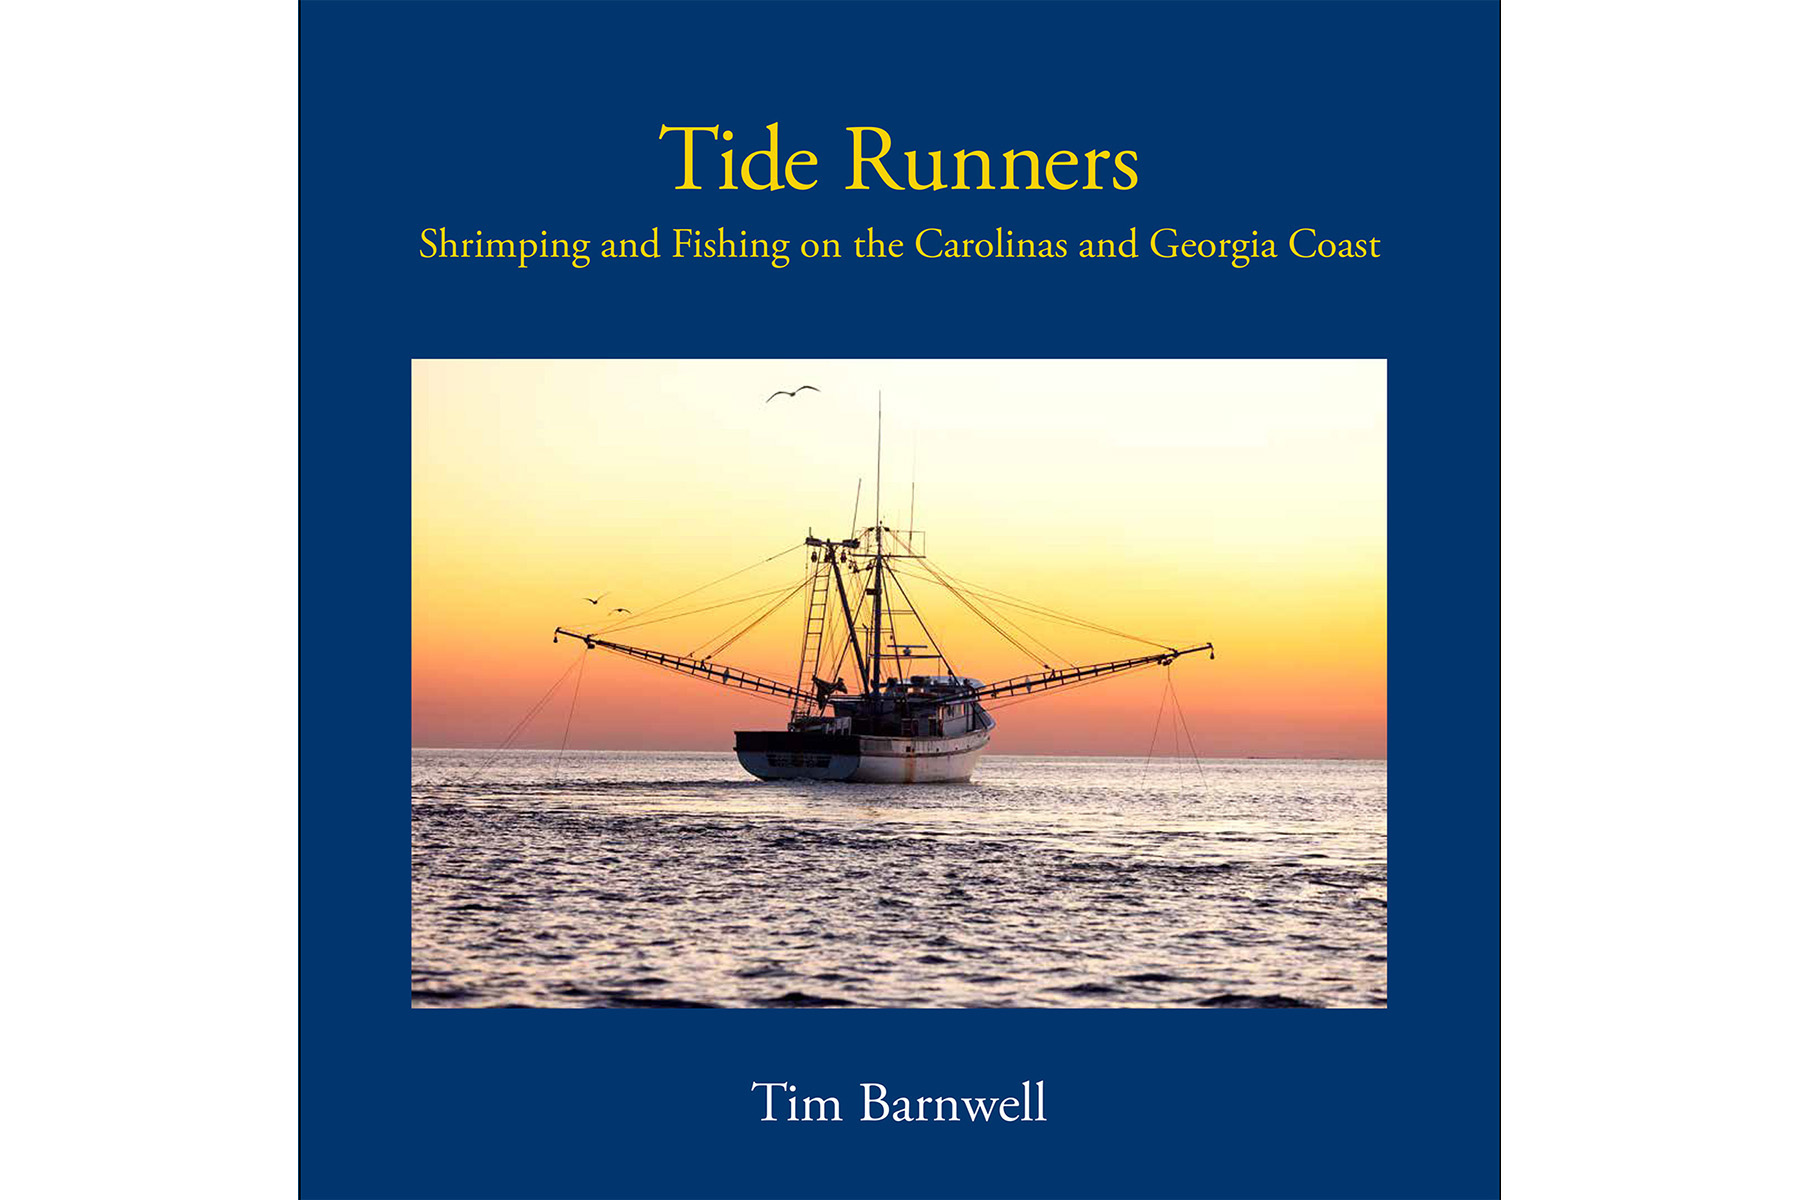 Tide Runners cover for book page 2.jpg